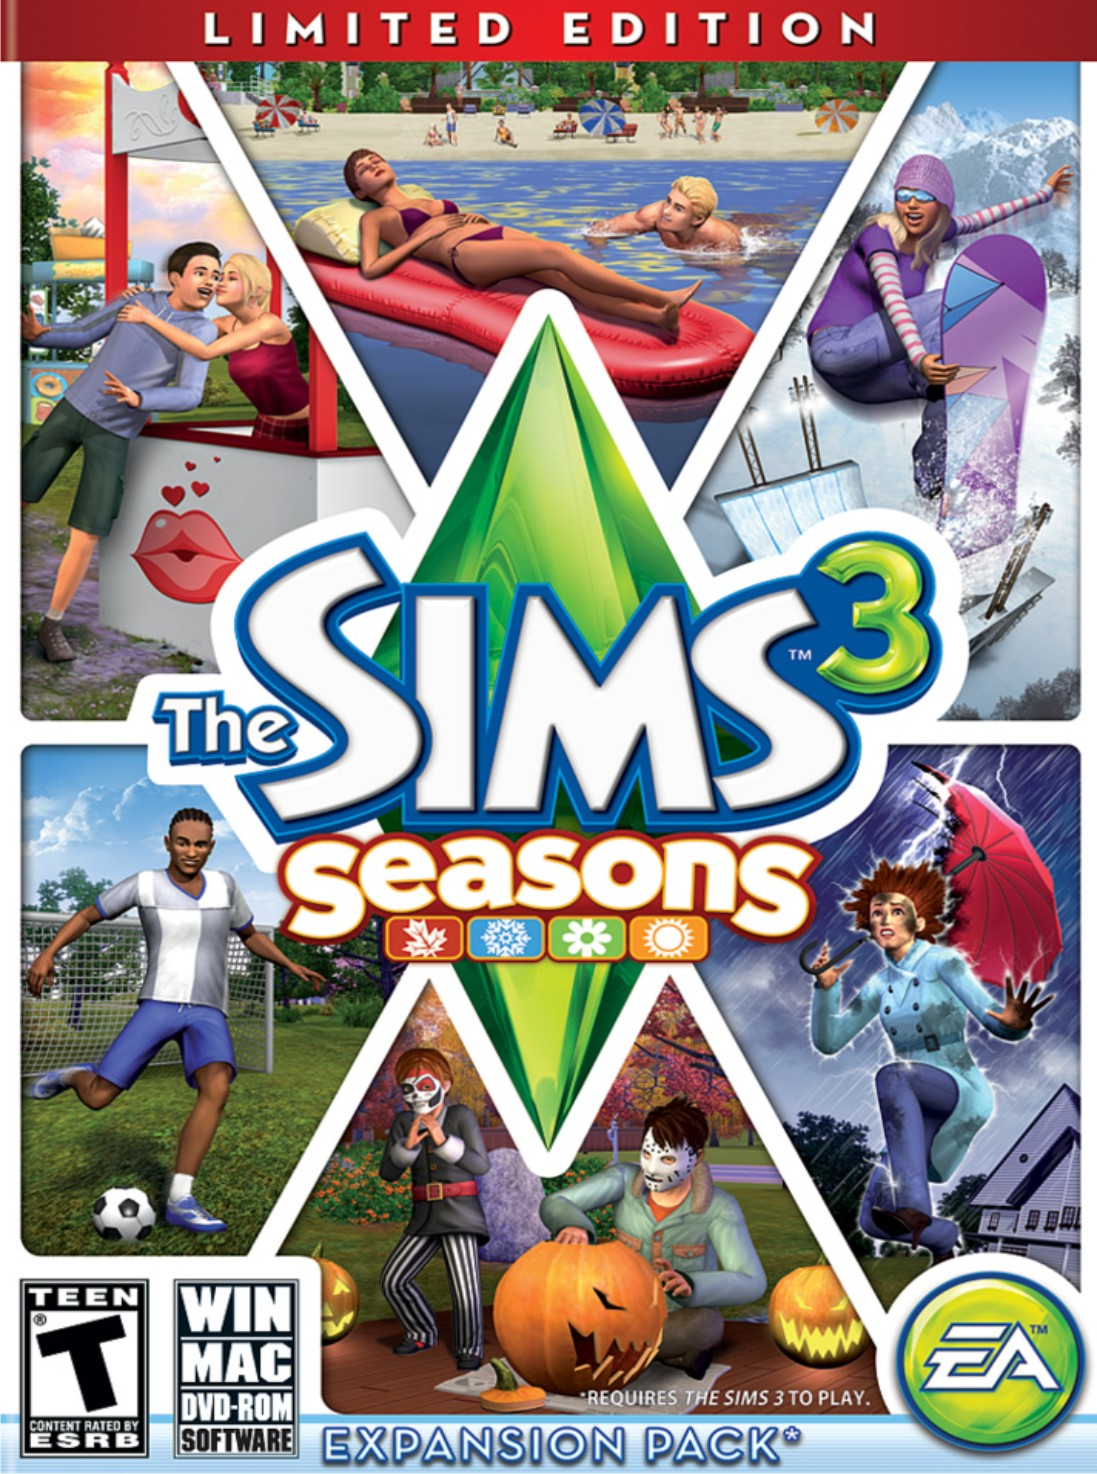 The Sims 3 Season RELOADED | Full Version | PC Games Free Download